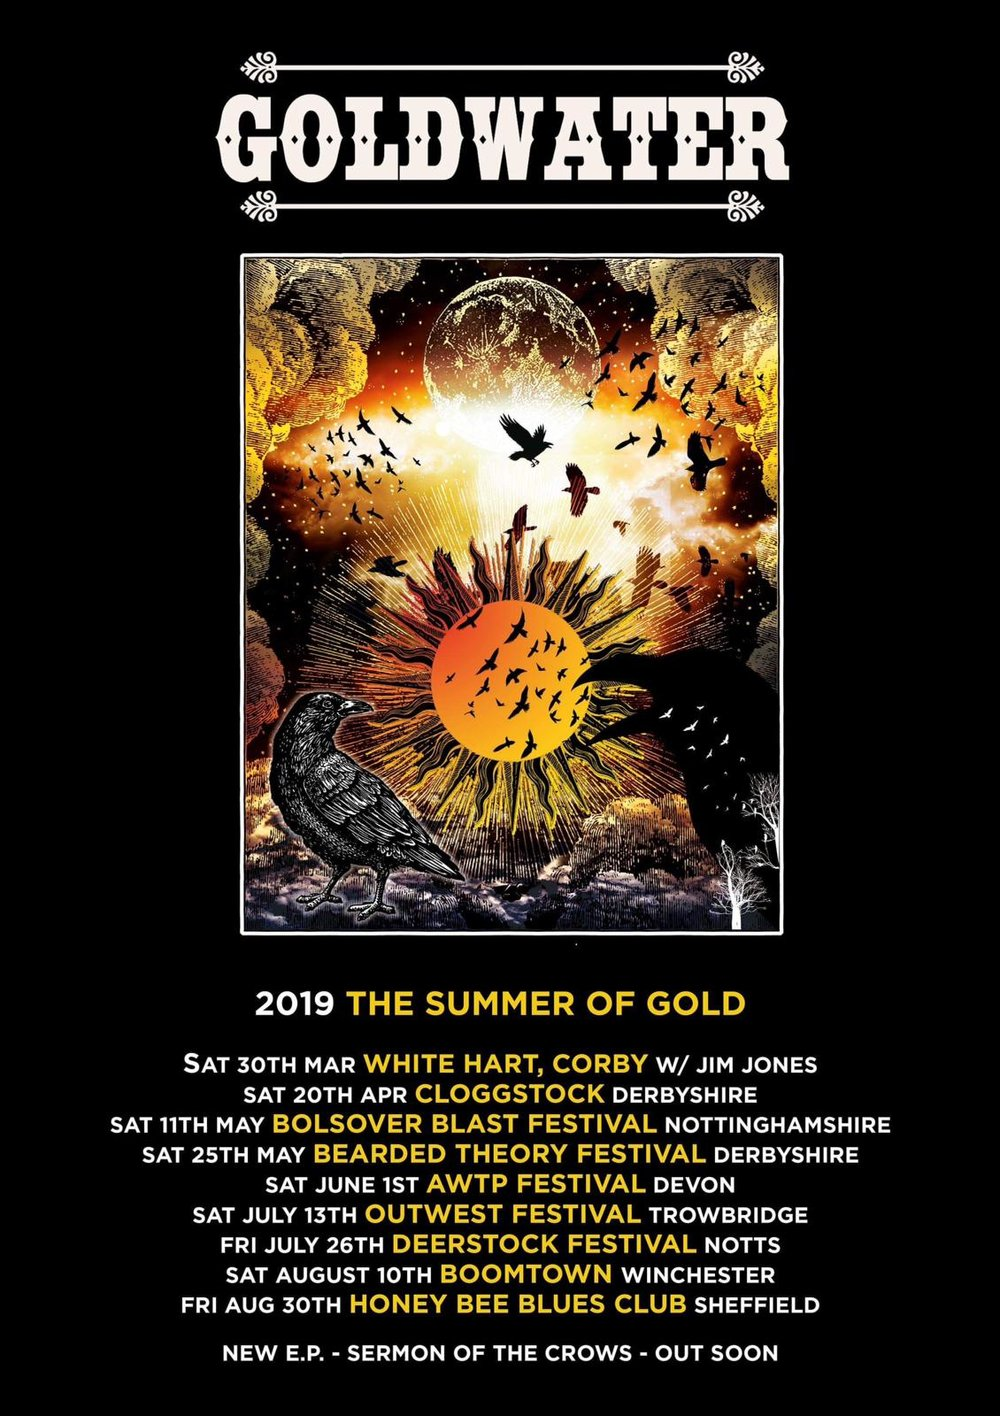 SUMMER OF GOLD! - Festival season is approaching and we've lined up a cracking Summer of Gold! Boomtown, Bearded Theory, OUTwest, Deerstock, Bolsover Blast and Alice's Wicked Tea Party! See you in the fields!!